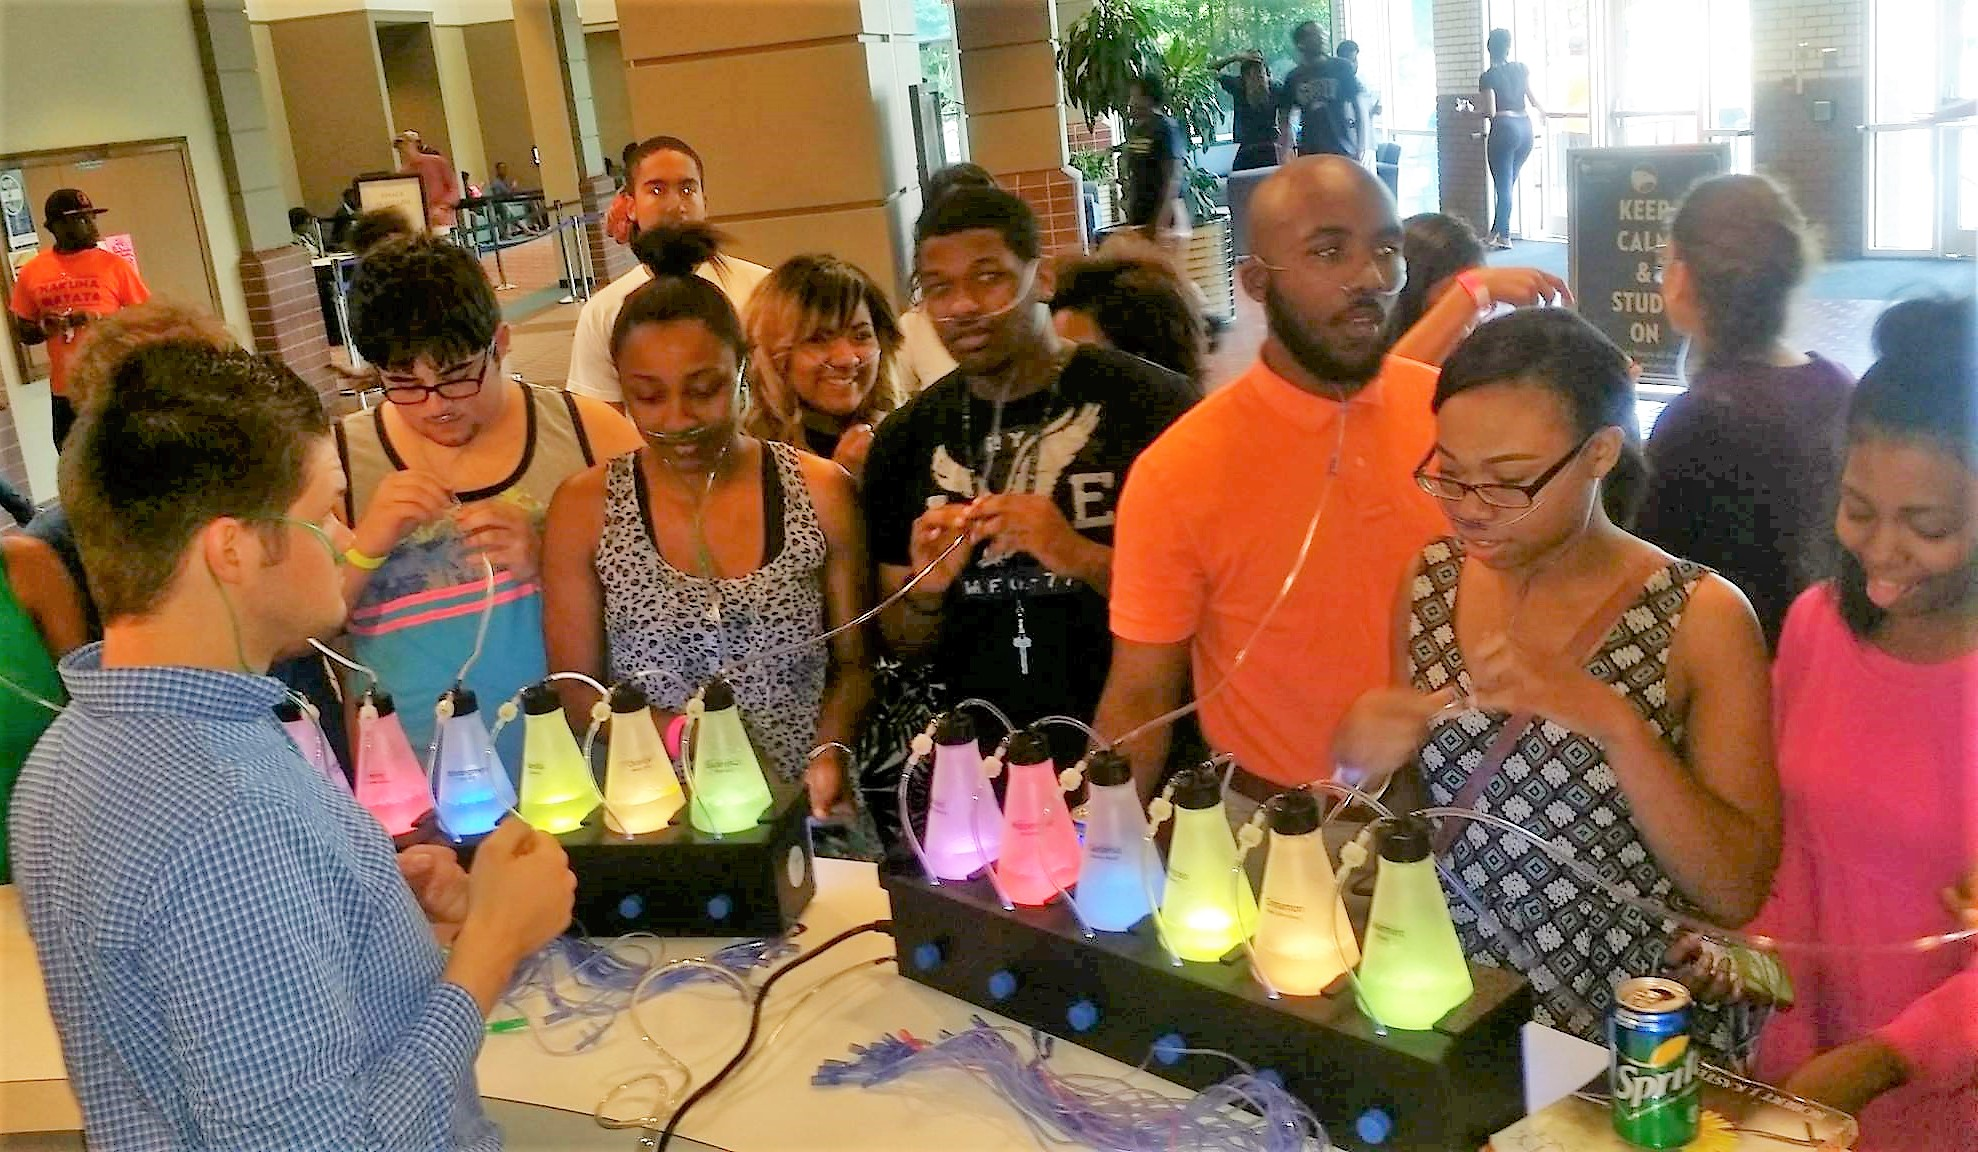 student life event ideas - oxygen bar rentals